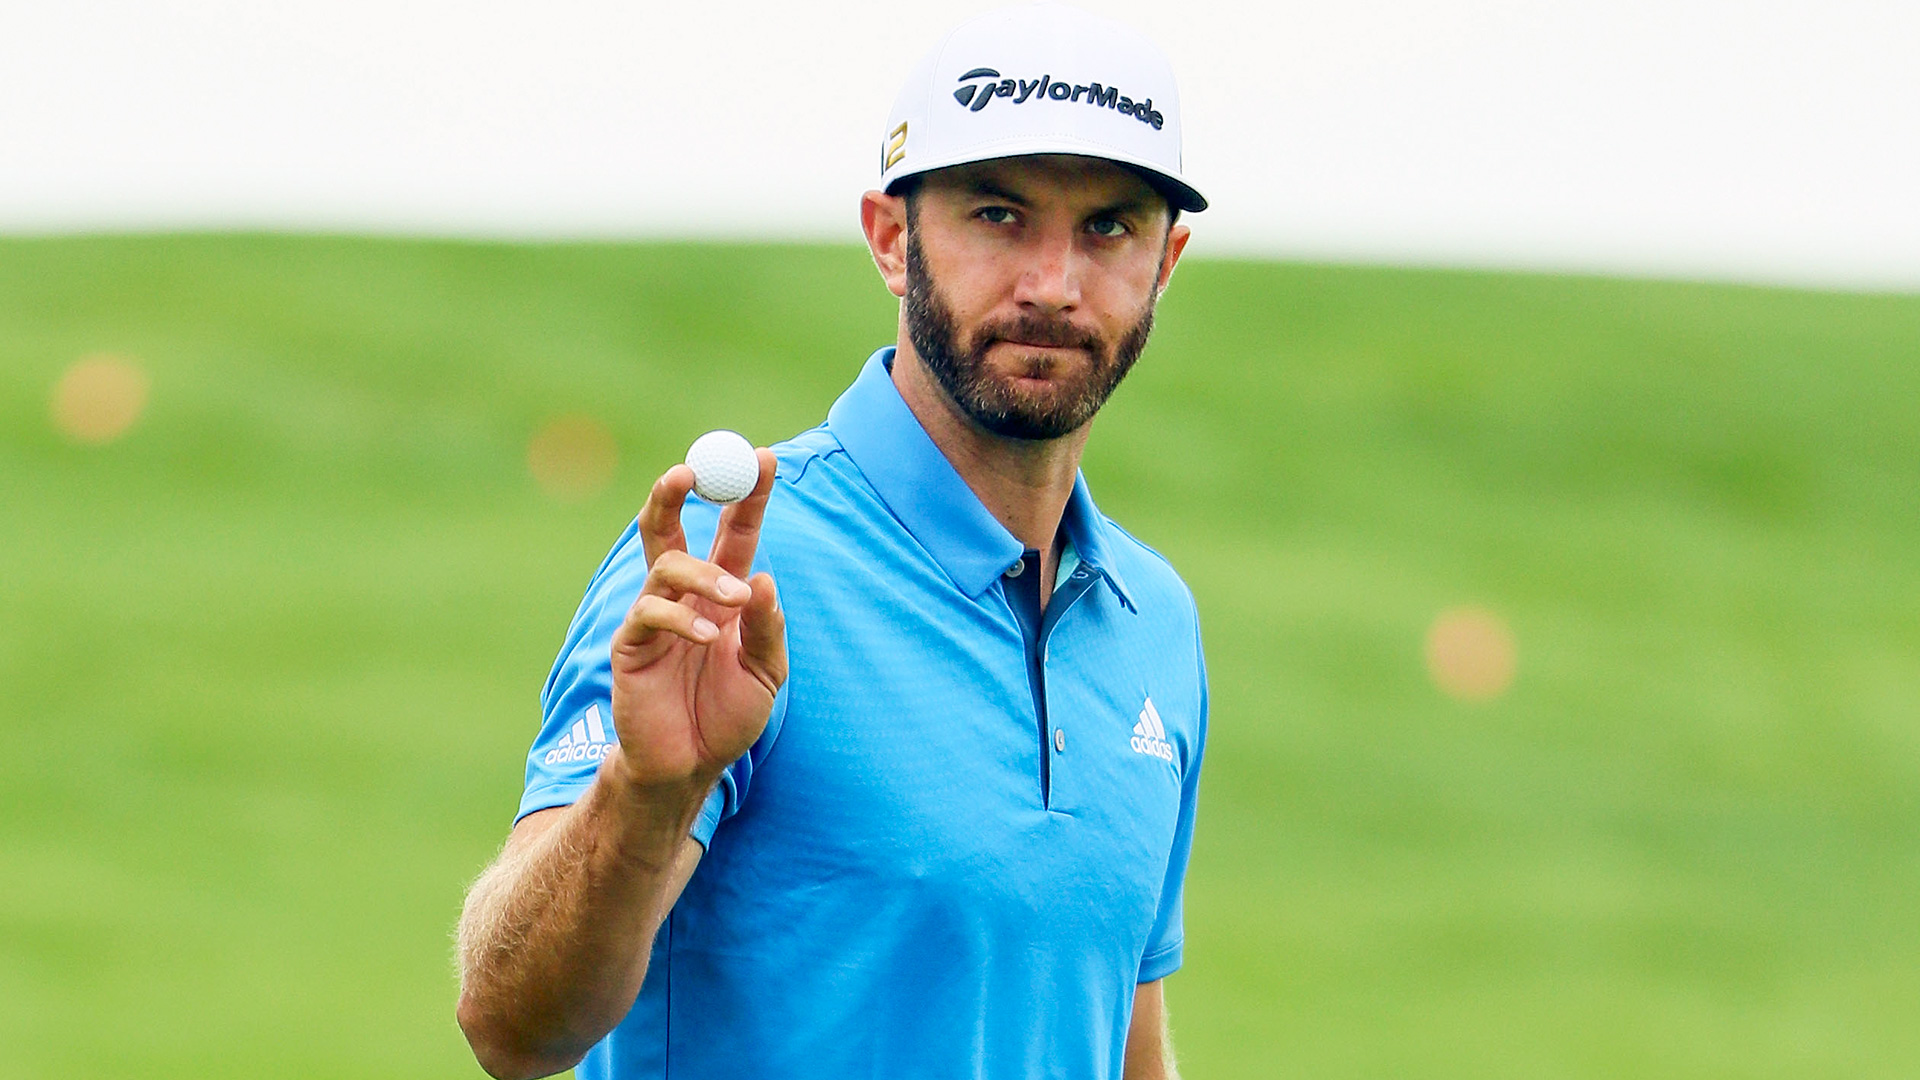 Dustin Johnson not one to dwell on past U.S. Open failures  100f3e8177a